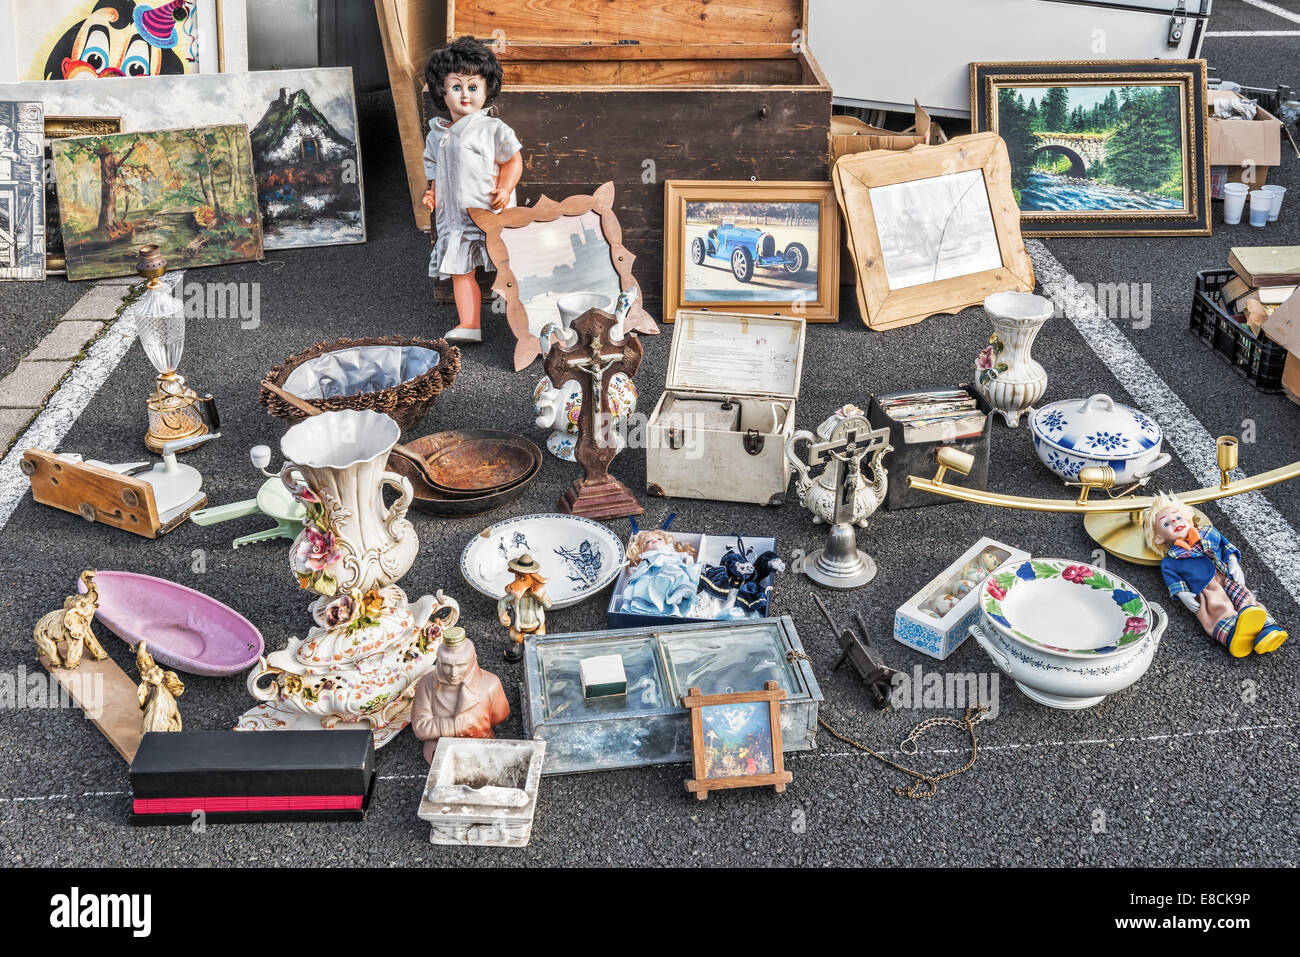 Odds and ends on a flea market stall, Sarreguemines, Moselle, France, Europe - Stock Image